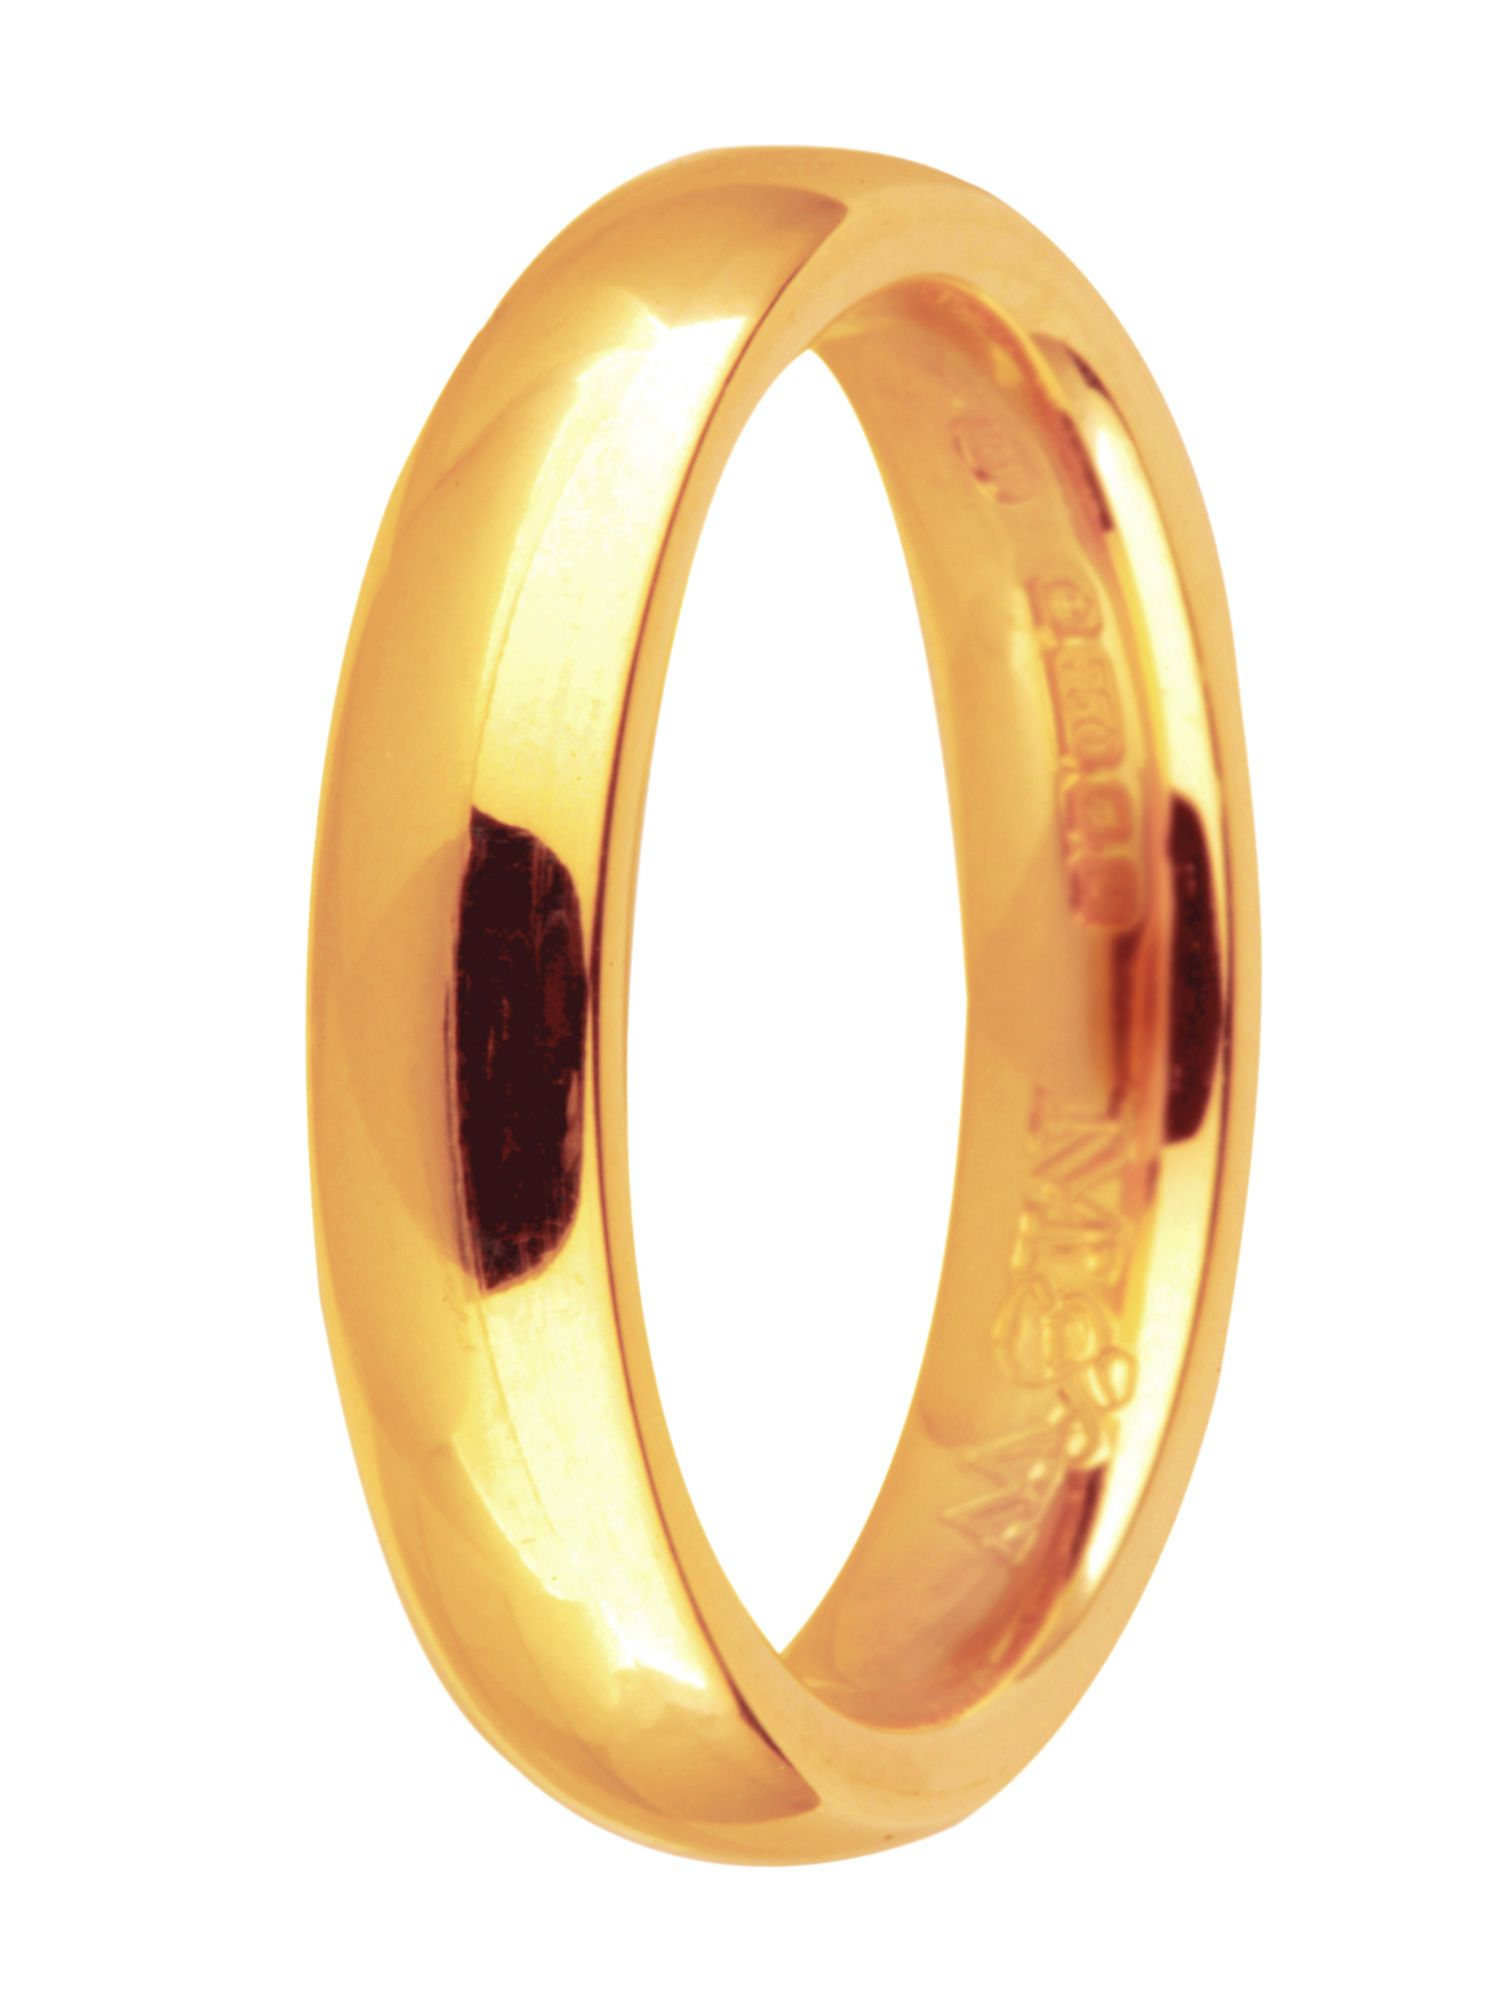 Brides 9ct gold 5mm court wedding ring - Gold